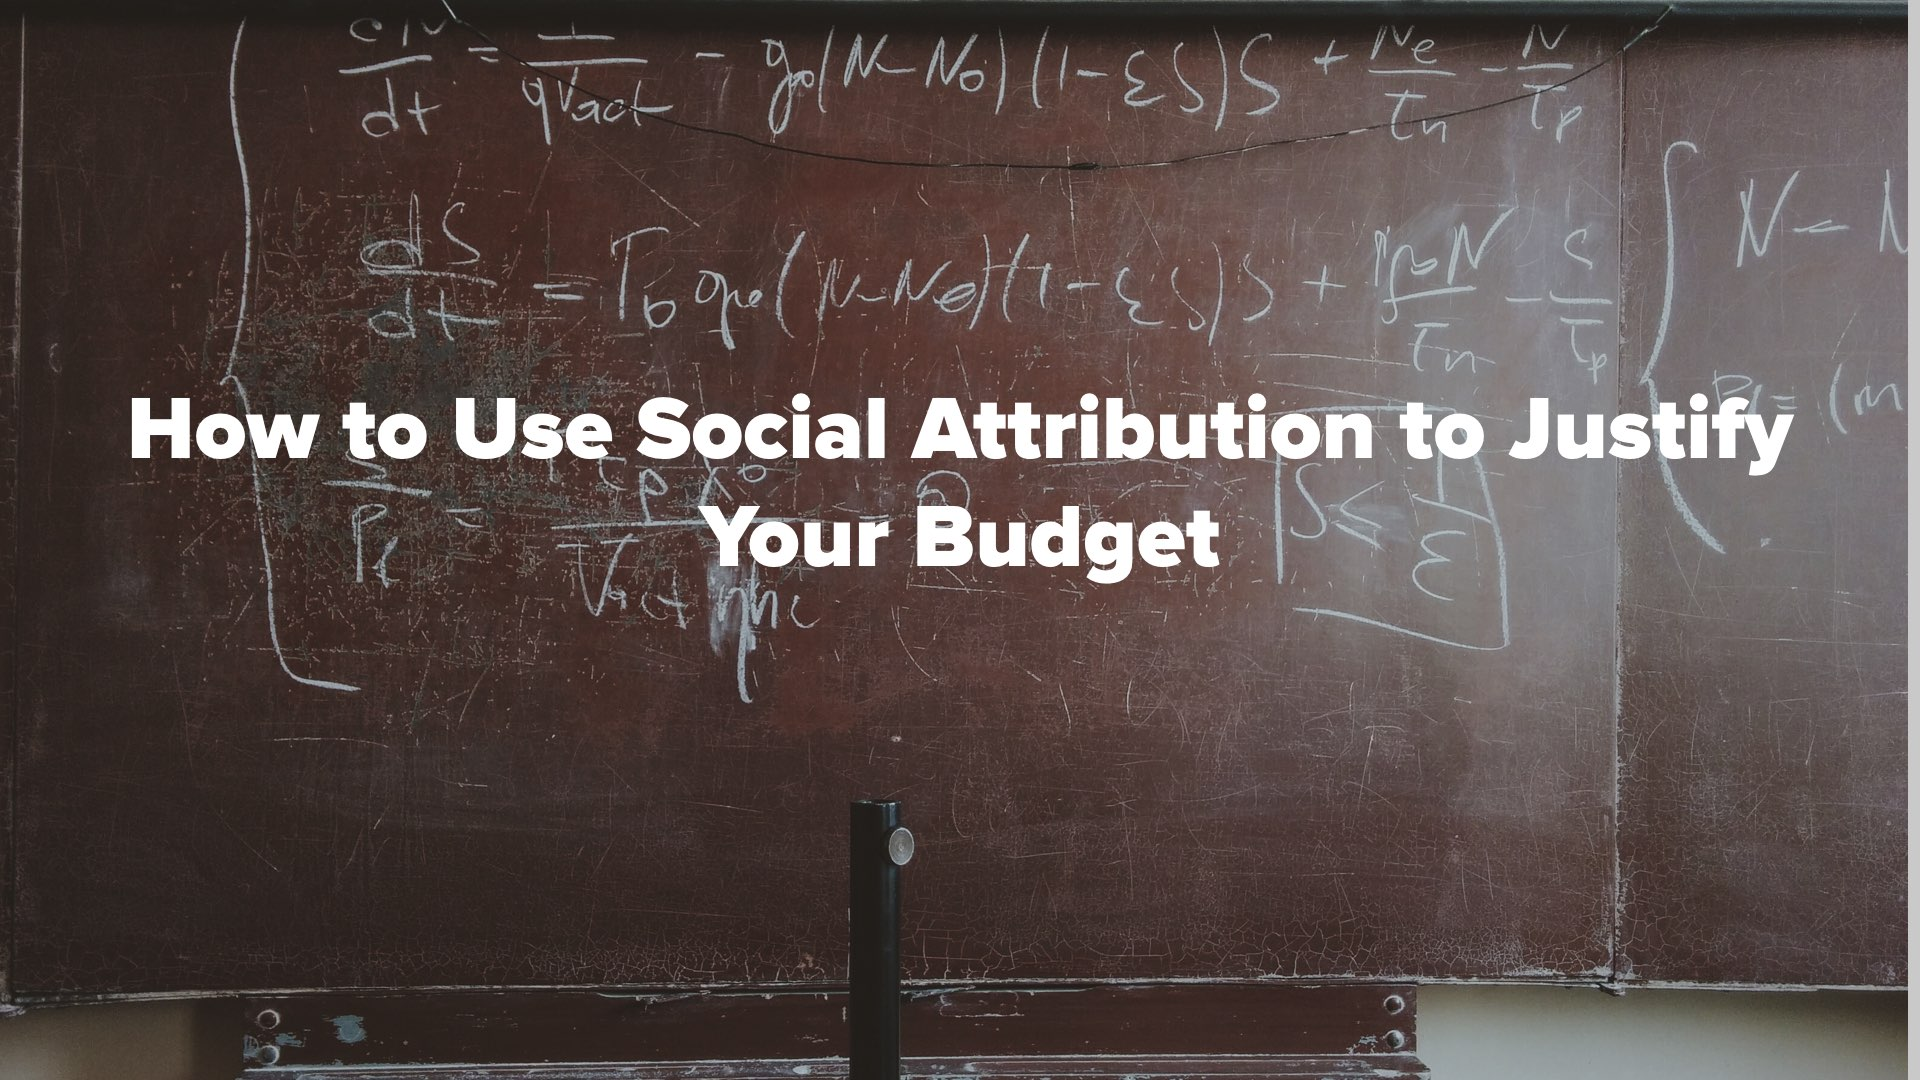 Webinar On Demand: How to Use Social Attribution to Justify Your Budget